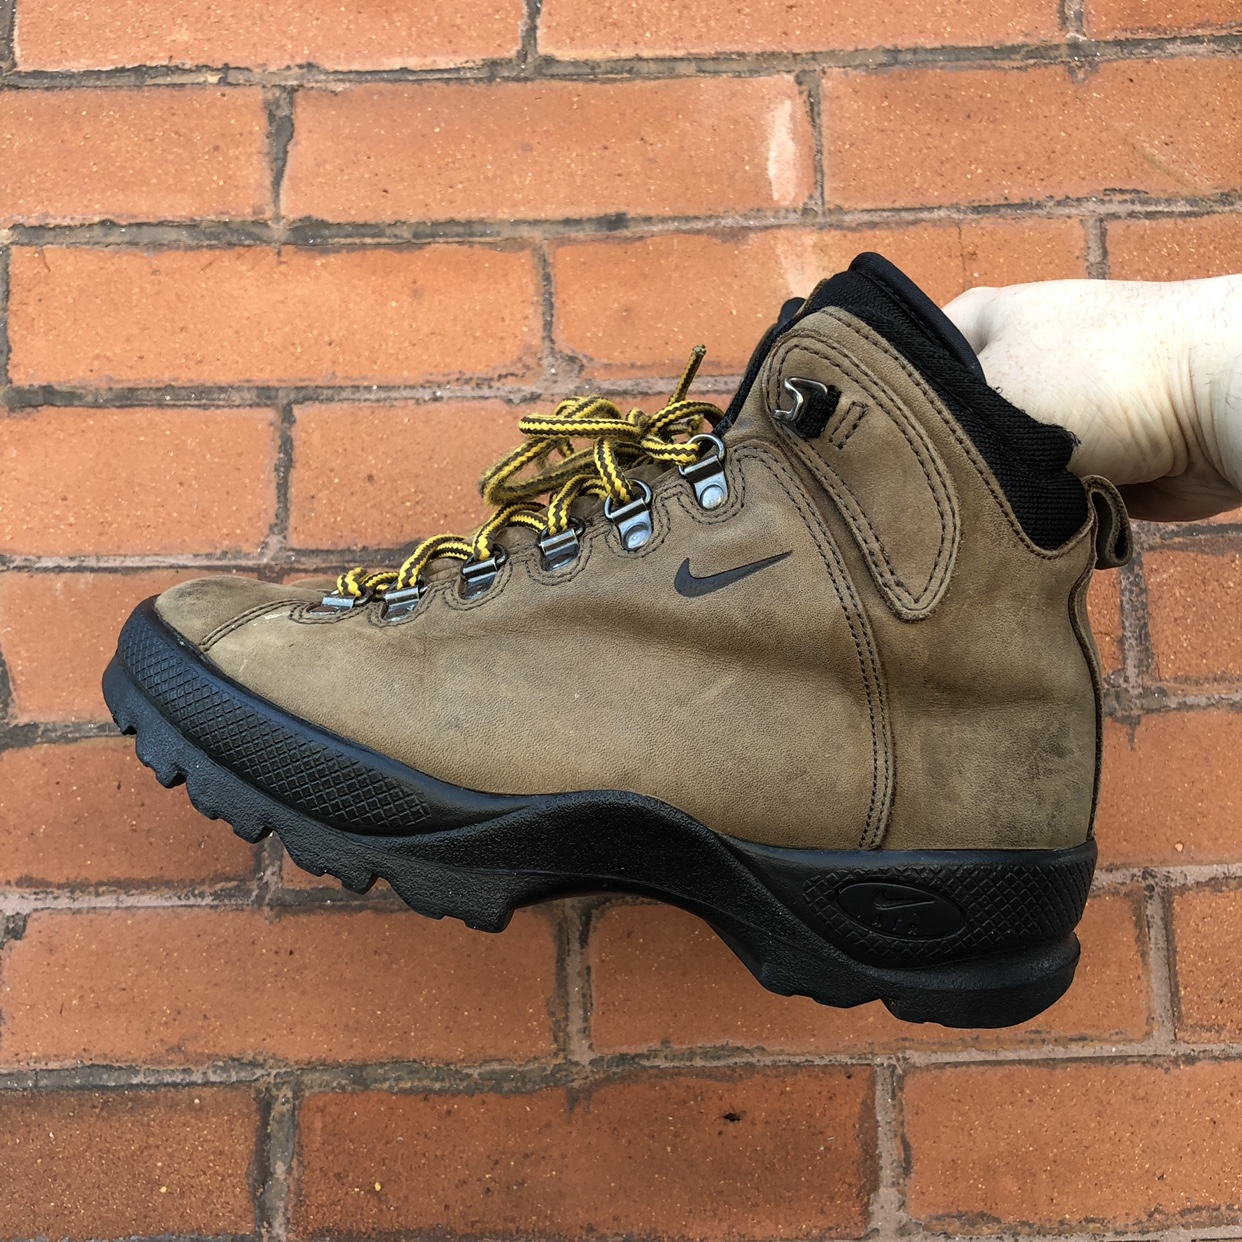 Vintage Nike Acg boots. Size 7. In good